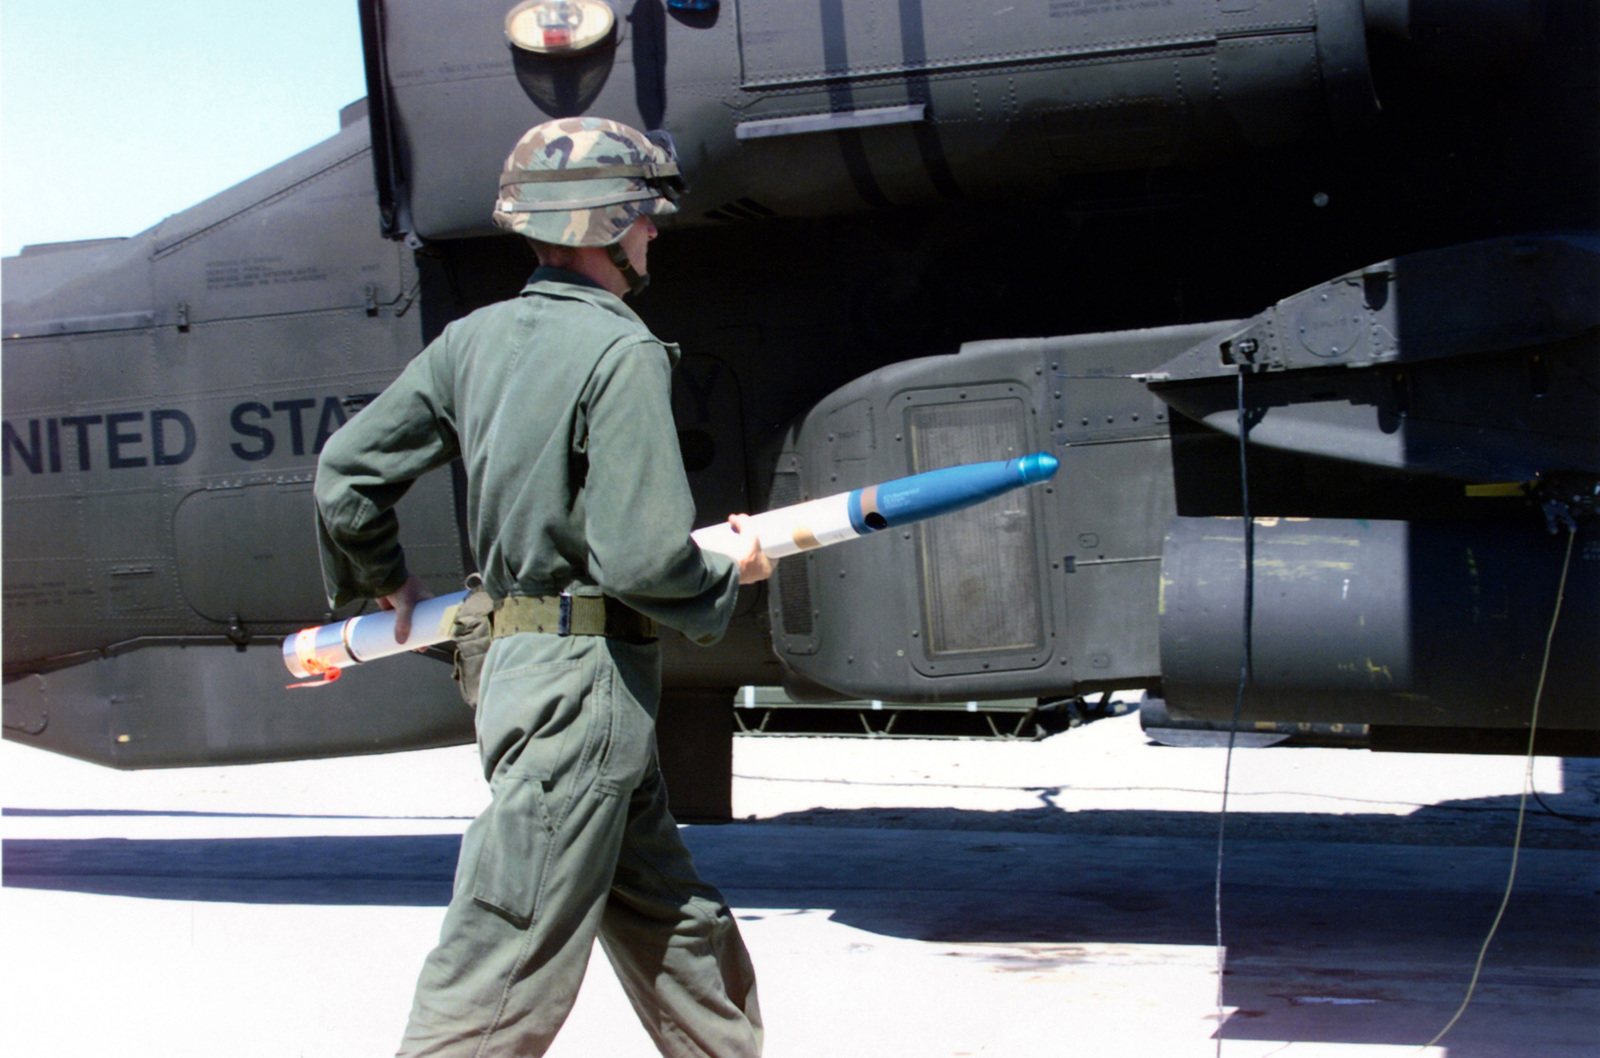 Sergeant John P. Green loads a 2.75 in FFAR (folding fin aerial rockets) into a AH-64D Apache Longbow Helicopter from the 1ST Battalion, 227th Aviation Regiment, First Cavalry Division during an annual aerial gunnery exercise. The helicopter landed at the Dalton/Henson Range Complex at Fort Hood, Texas. (Duplicate image, see also DDSD0108878 or search 990915A4980V049)